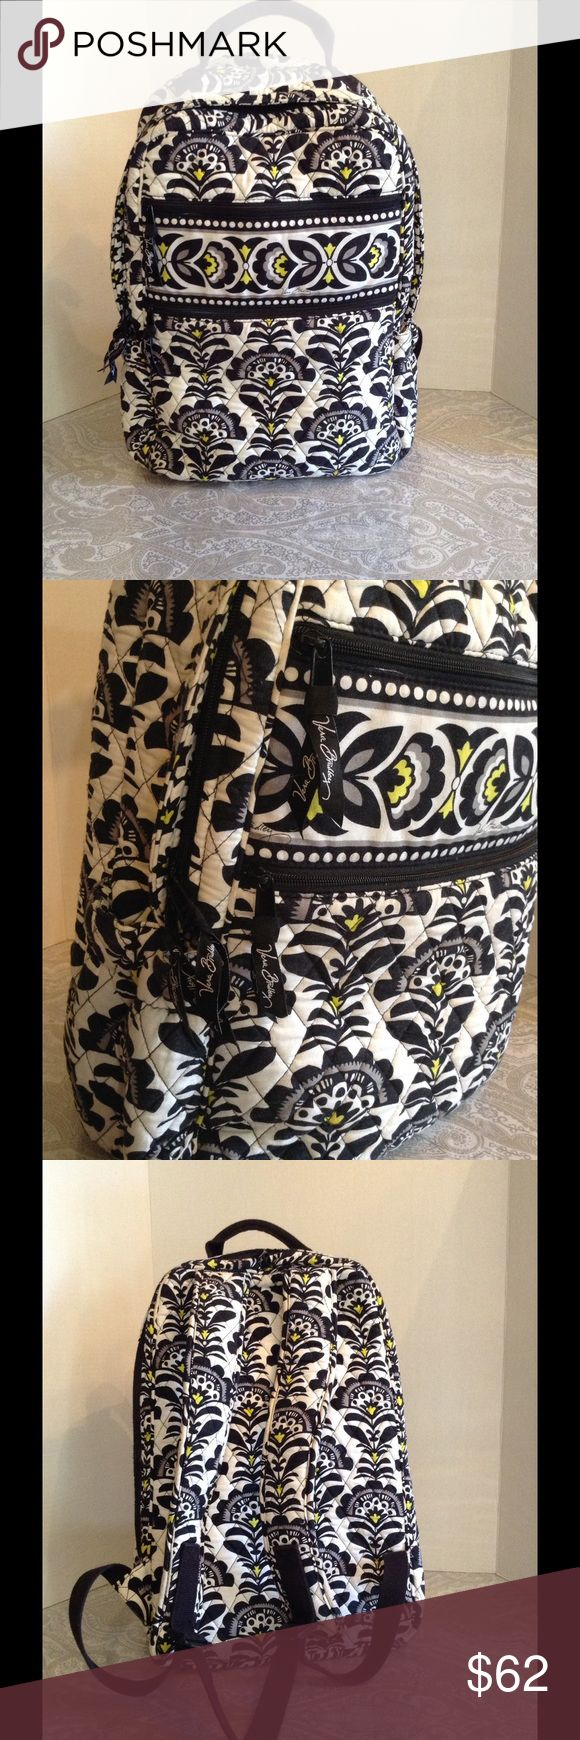 Vera Bradley backpack! Black, white and yellow. Vera Bradley backpack!  Lots of organization, separate padded zipper compartment for laptop or other items in addition to large main compartment, plus three smaller zipper compartments and two side pockets for water bottle or umbrella. This is a full size backpack. Vera Bradley Bags Backpacks